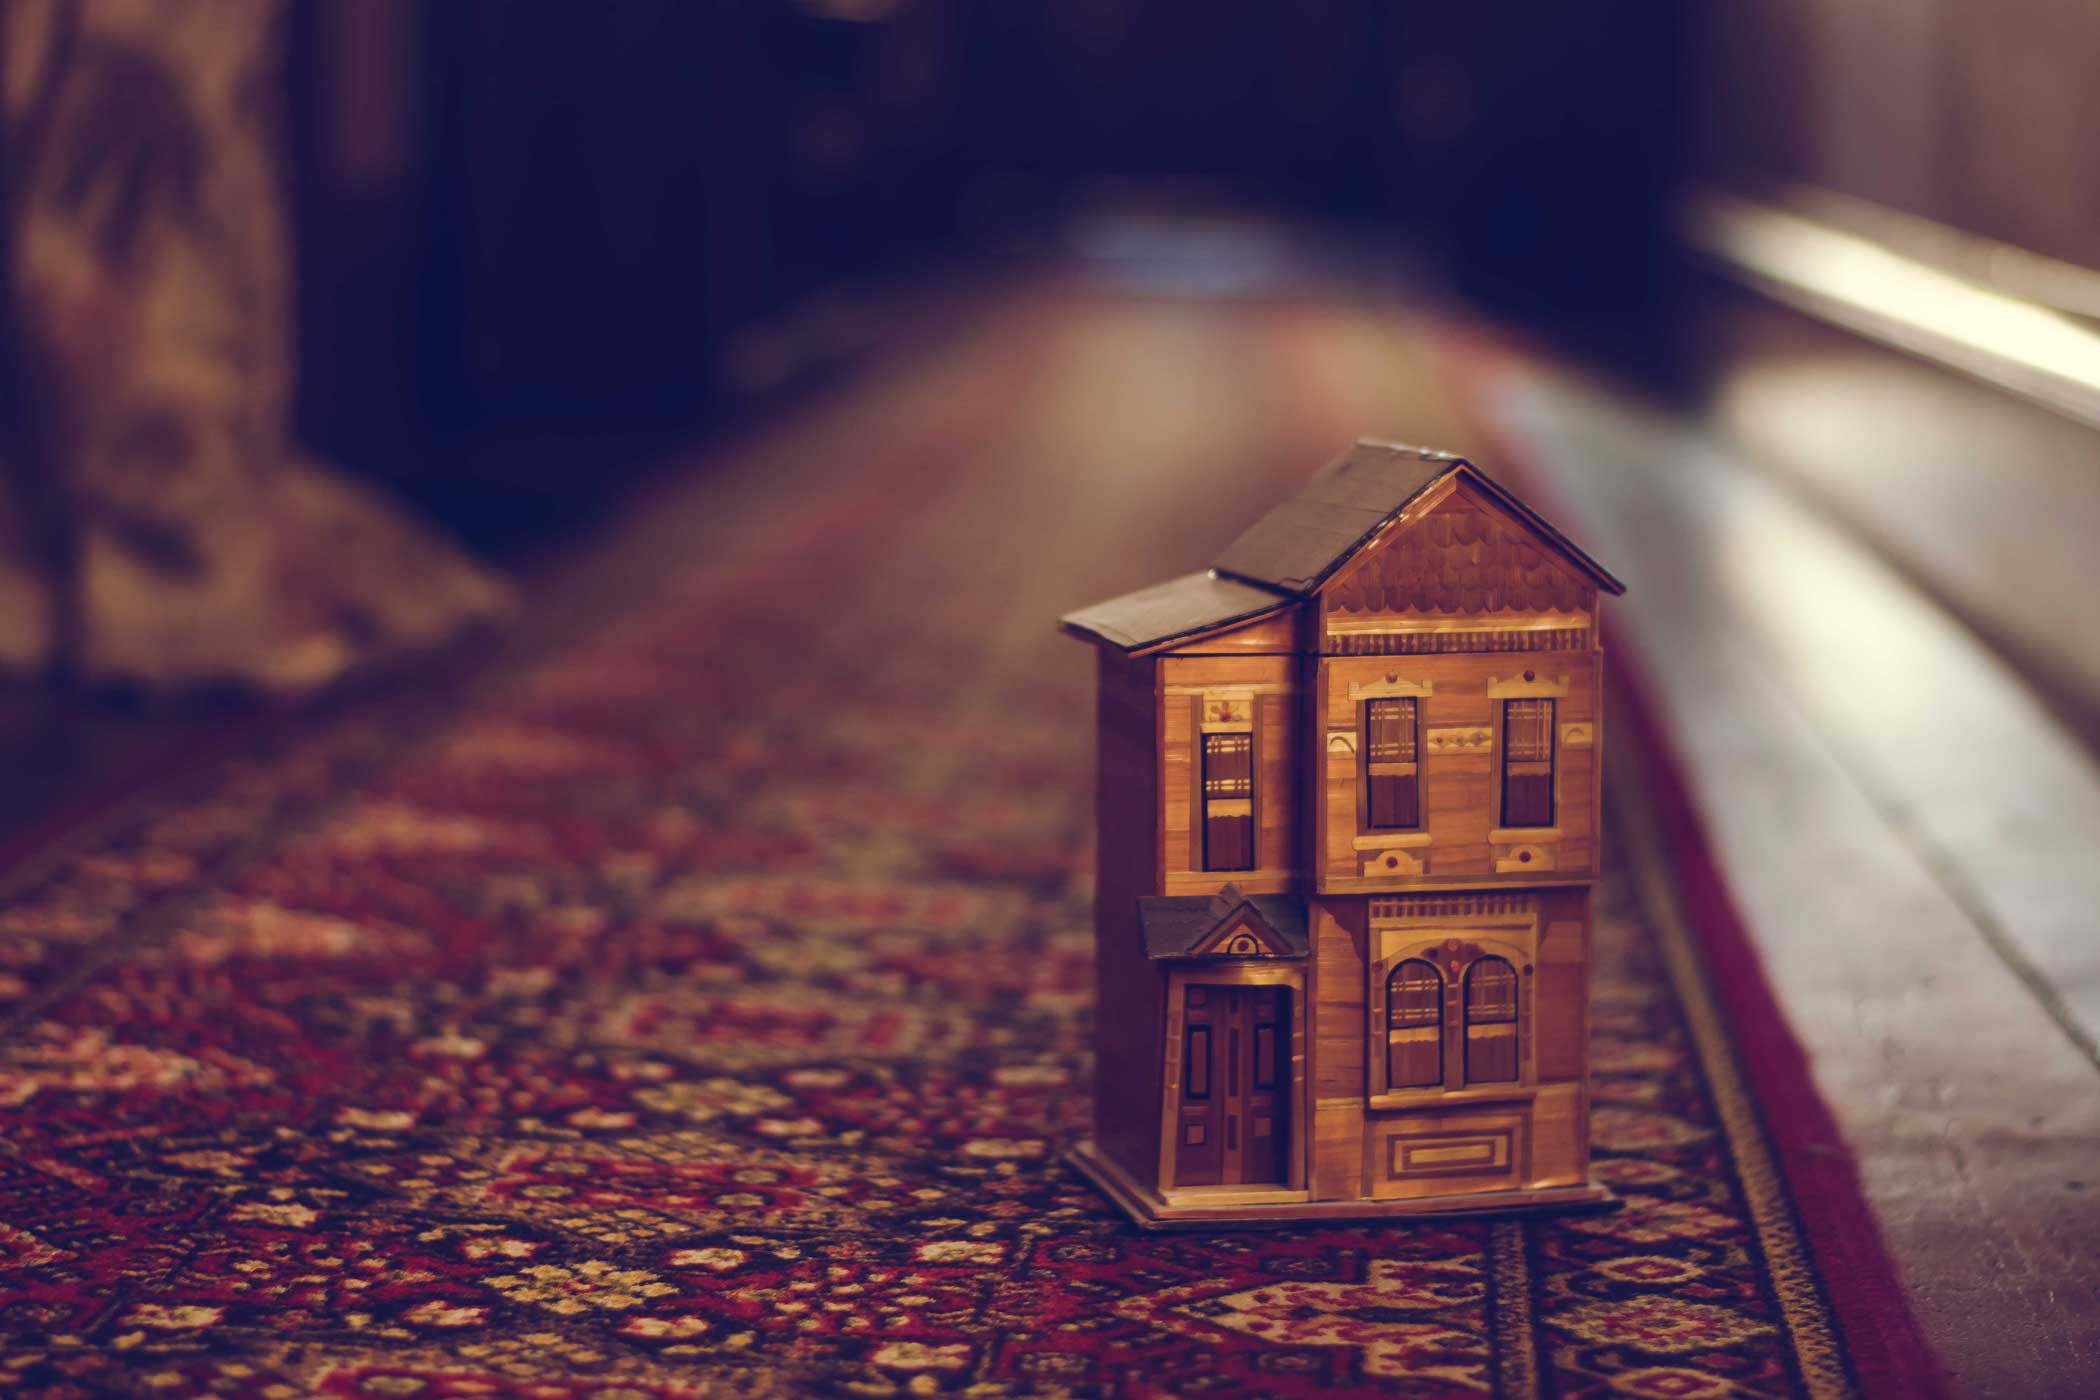 A close-up of a small model of a wood-framed town house sitting on a red patterned carpet on top of wooden floor boards.